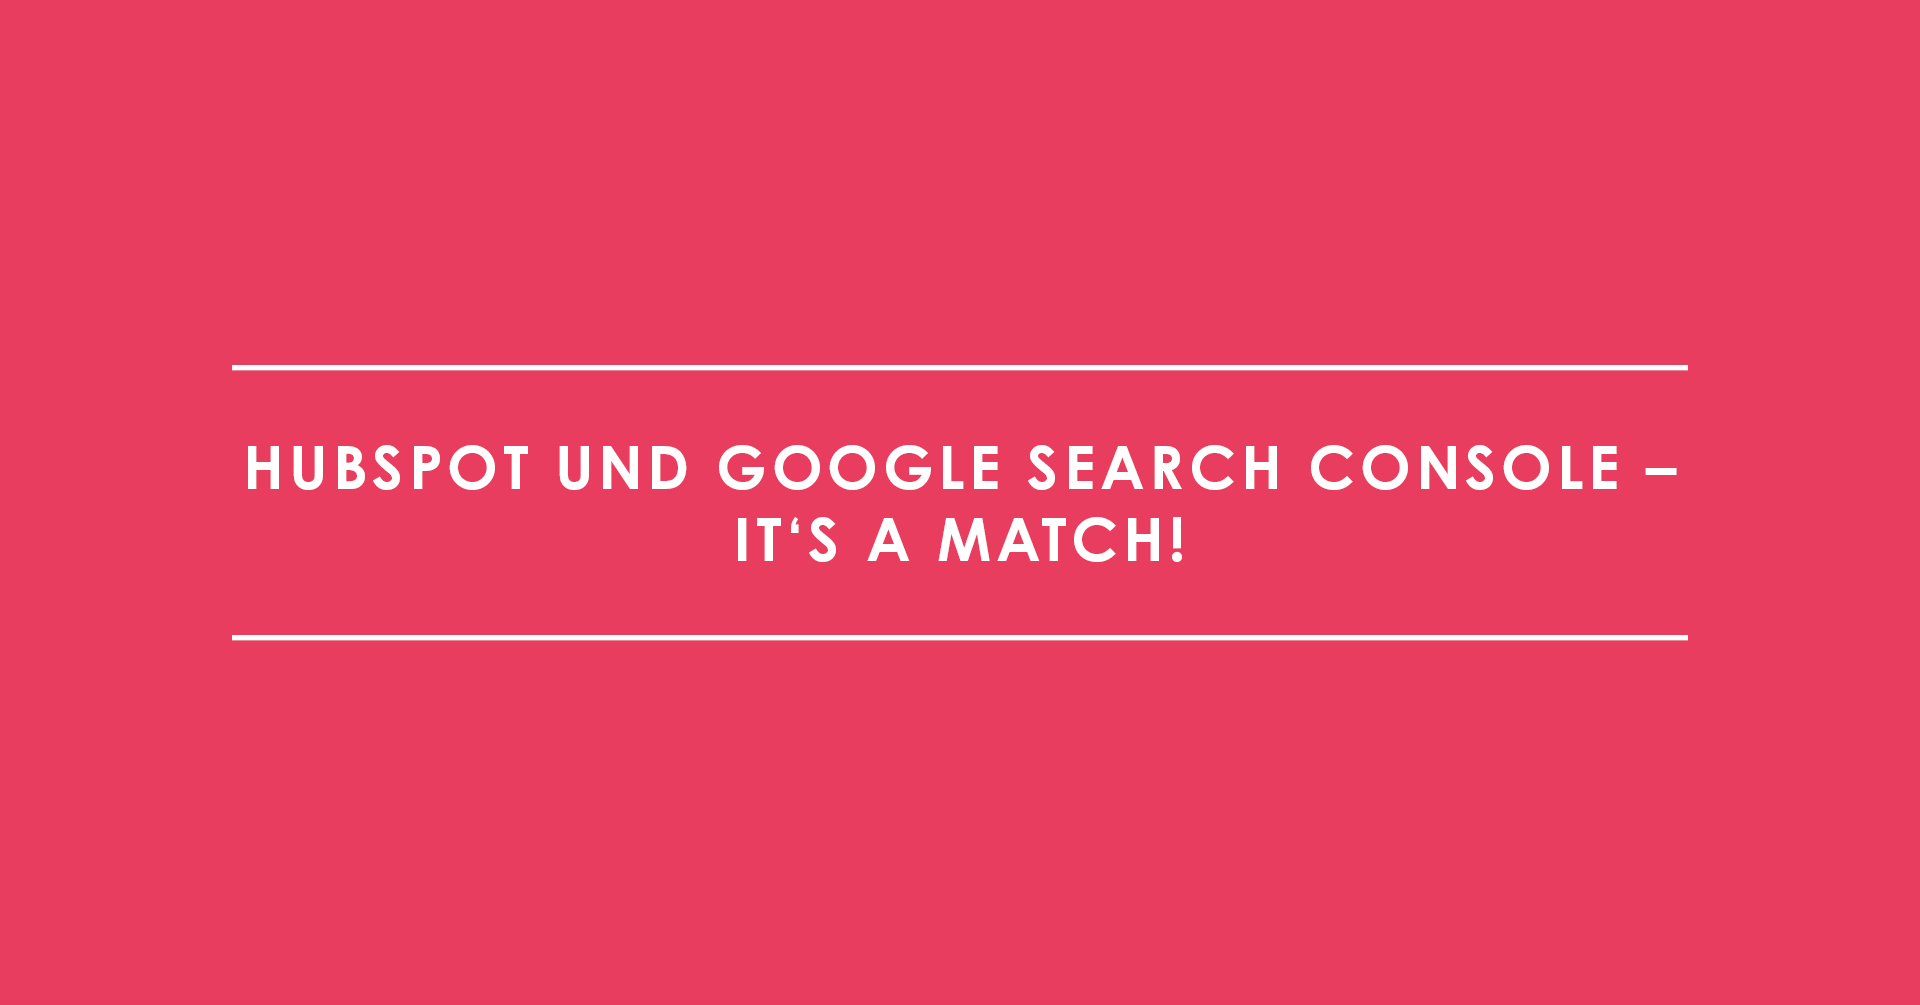 HubSpot und Google Search Console – It's a match!